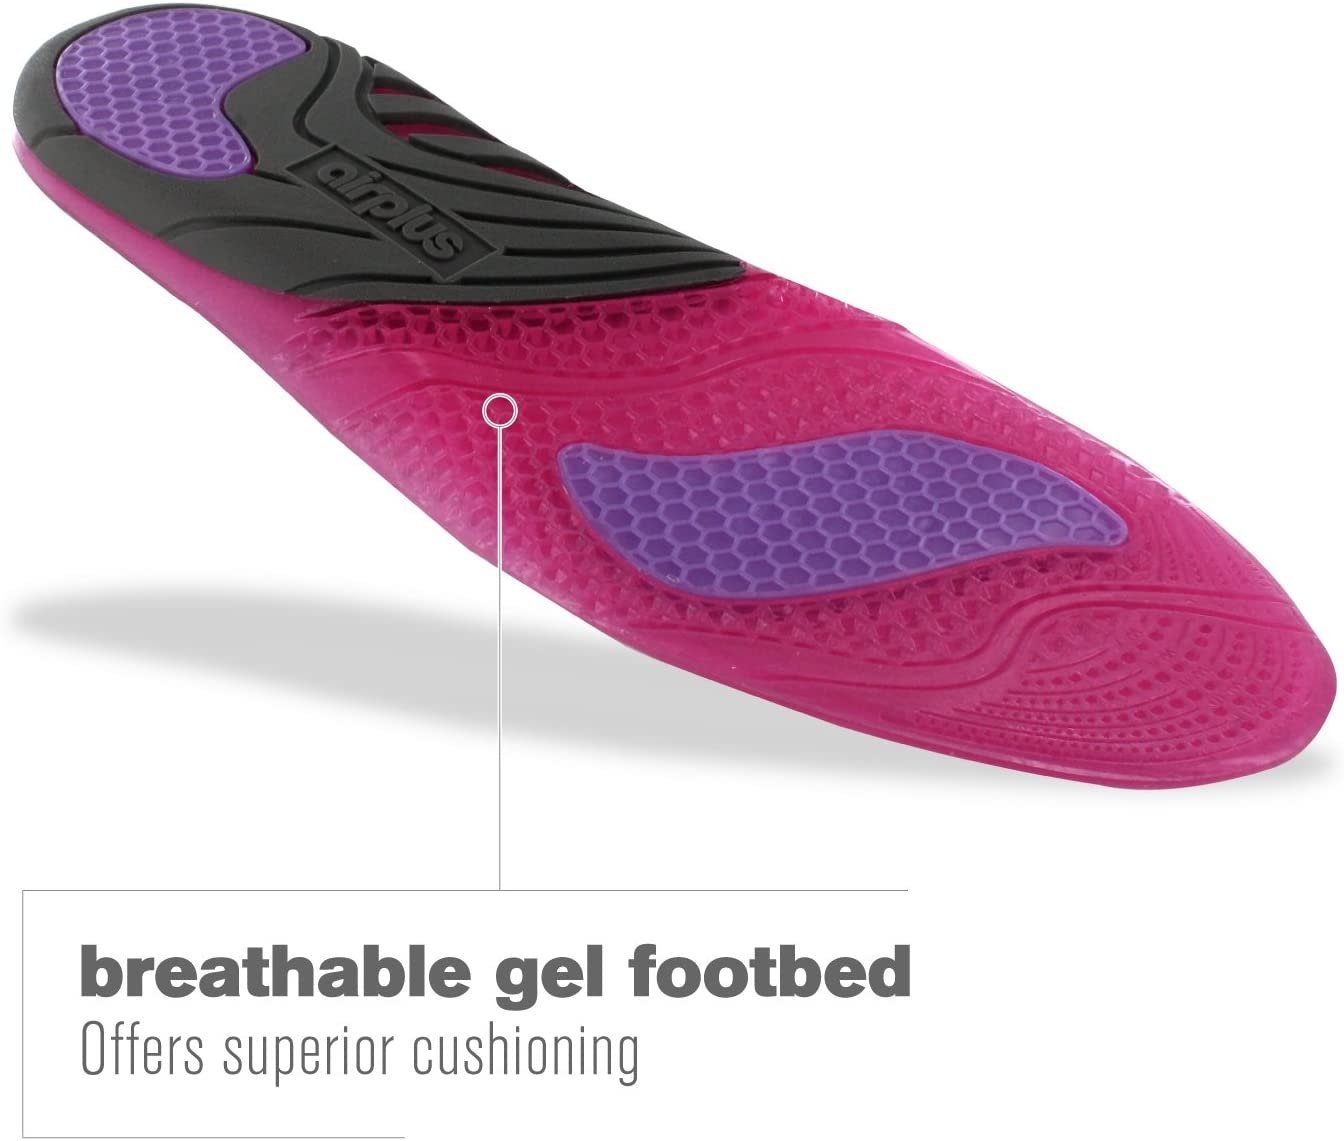 Airplus Amazing Active Gel Comfort Breathable Womens Shoe Insoles Size 5-11 NEW